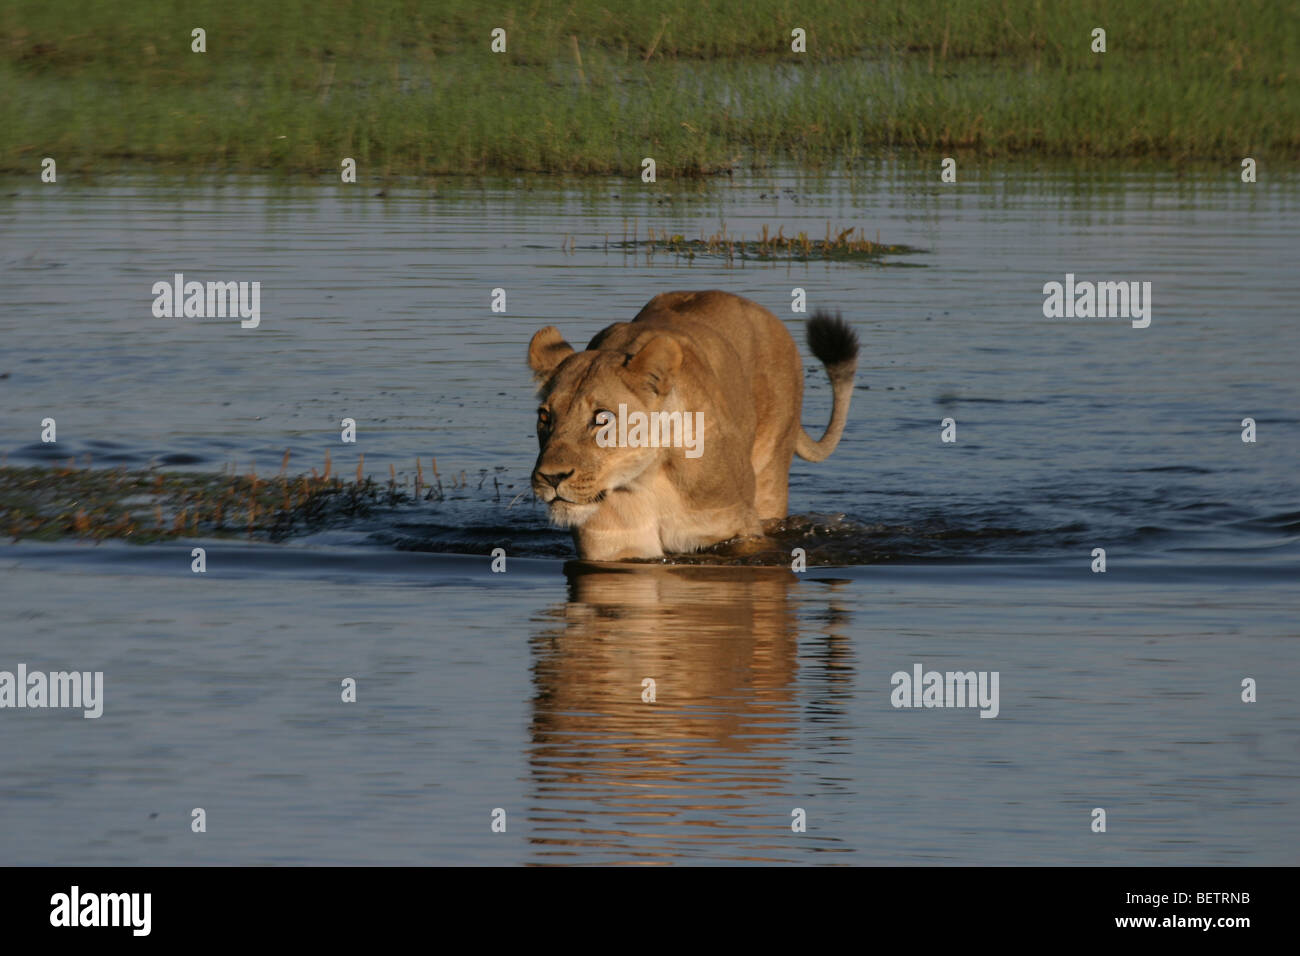 Lioness tentatively crossing the channel in Linyanti Concession, Botswana. - Stock Image